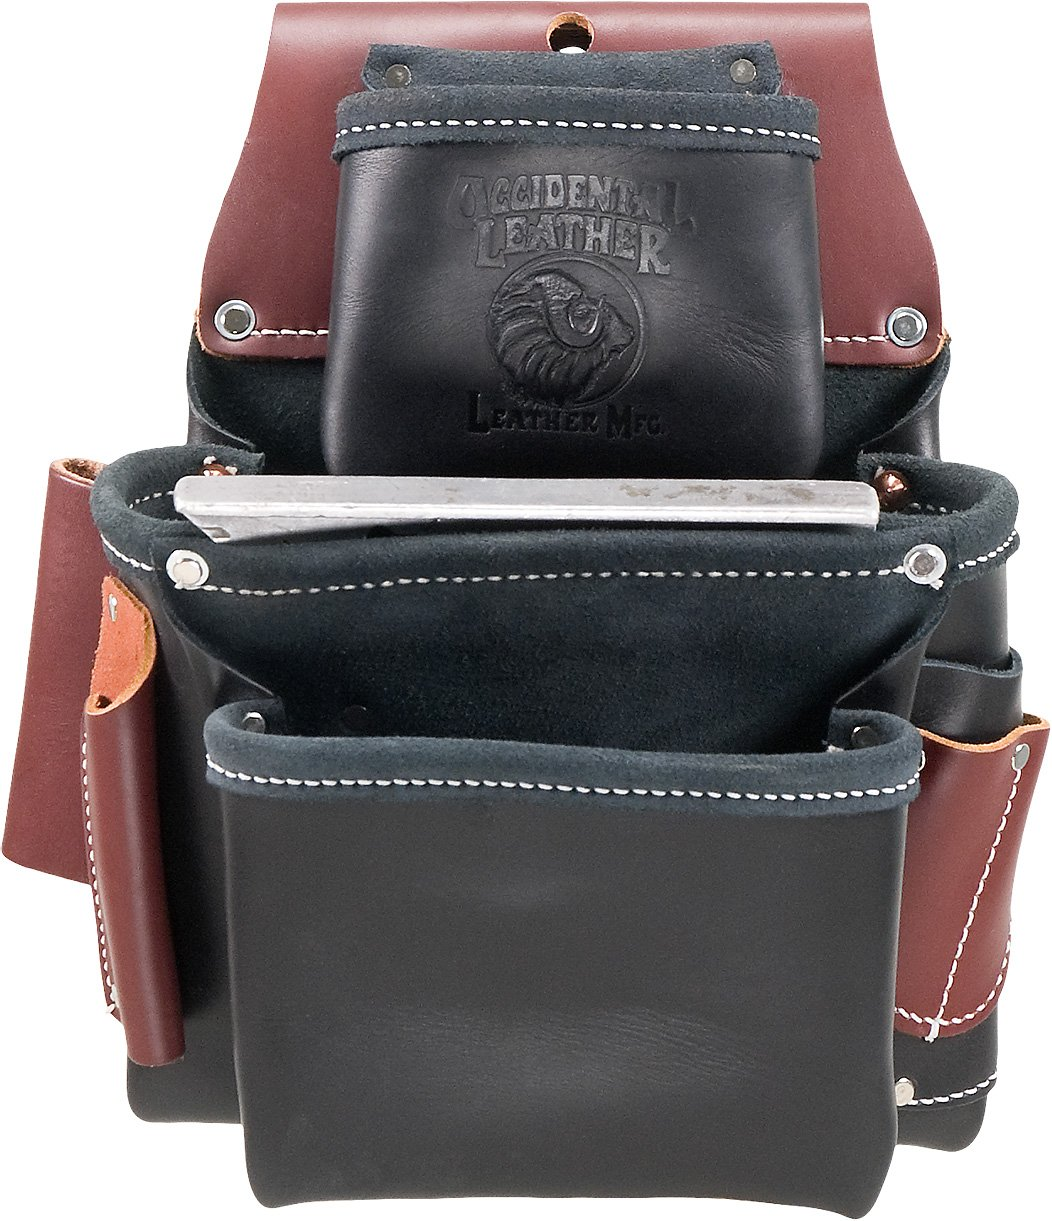 Occidental Leather B5060 3 Pouch Pro Fastener Bag Black